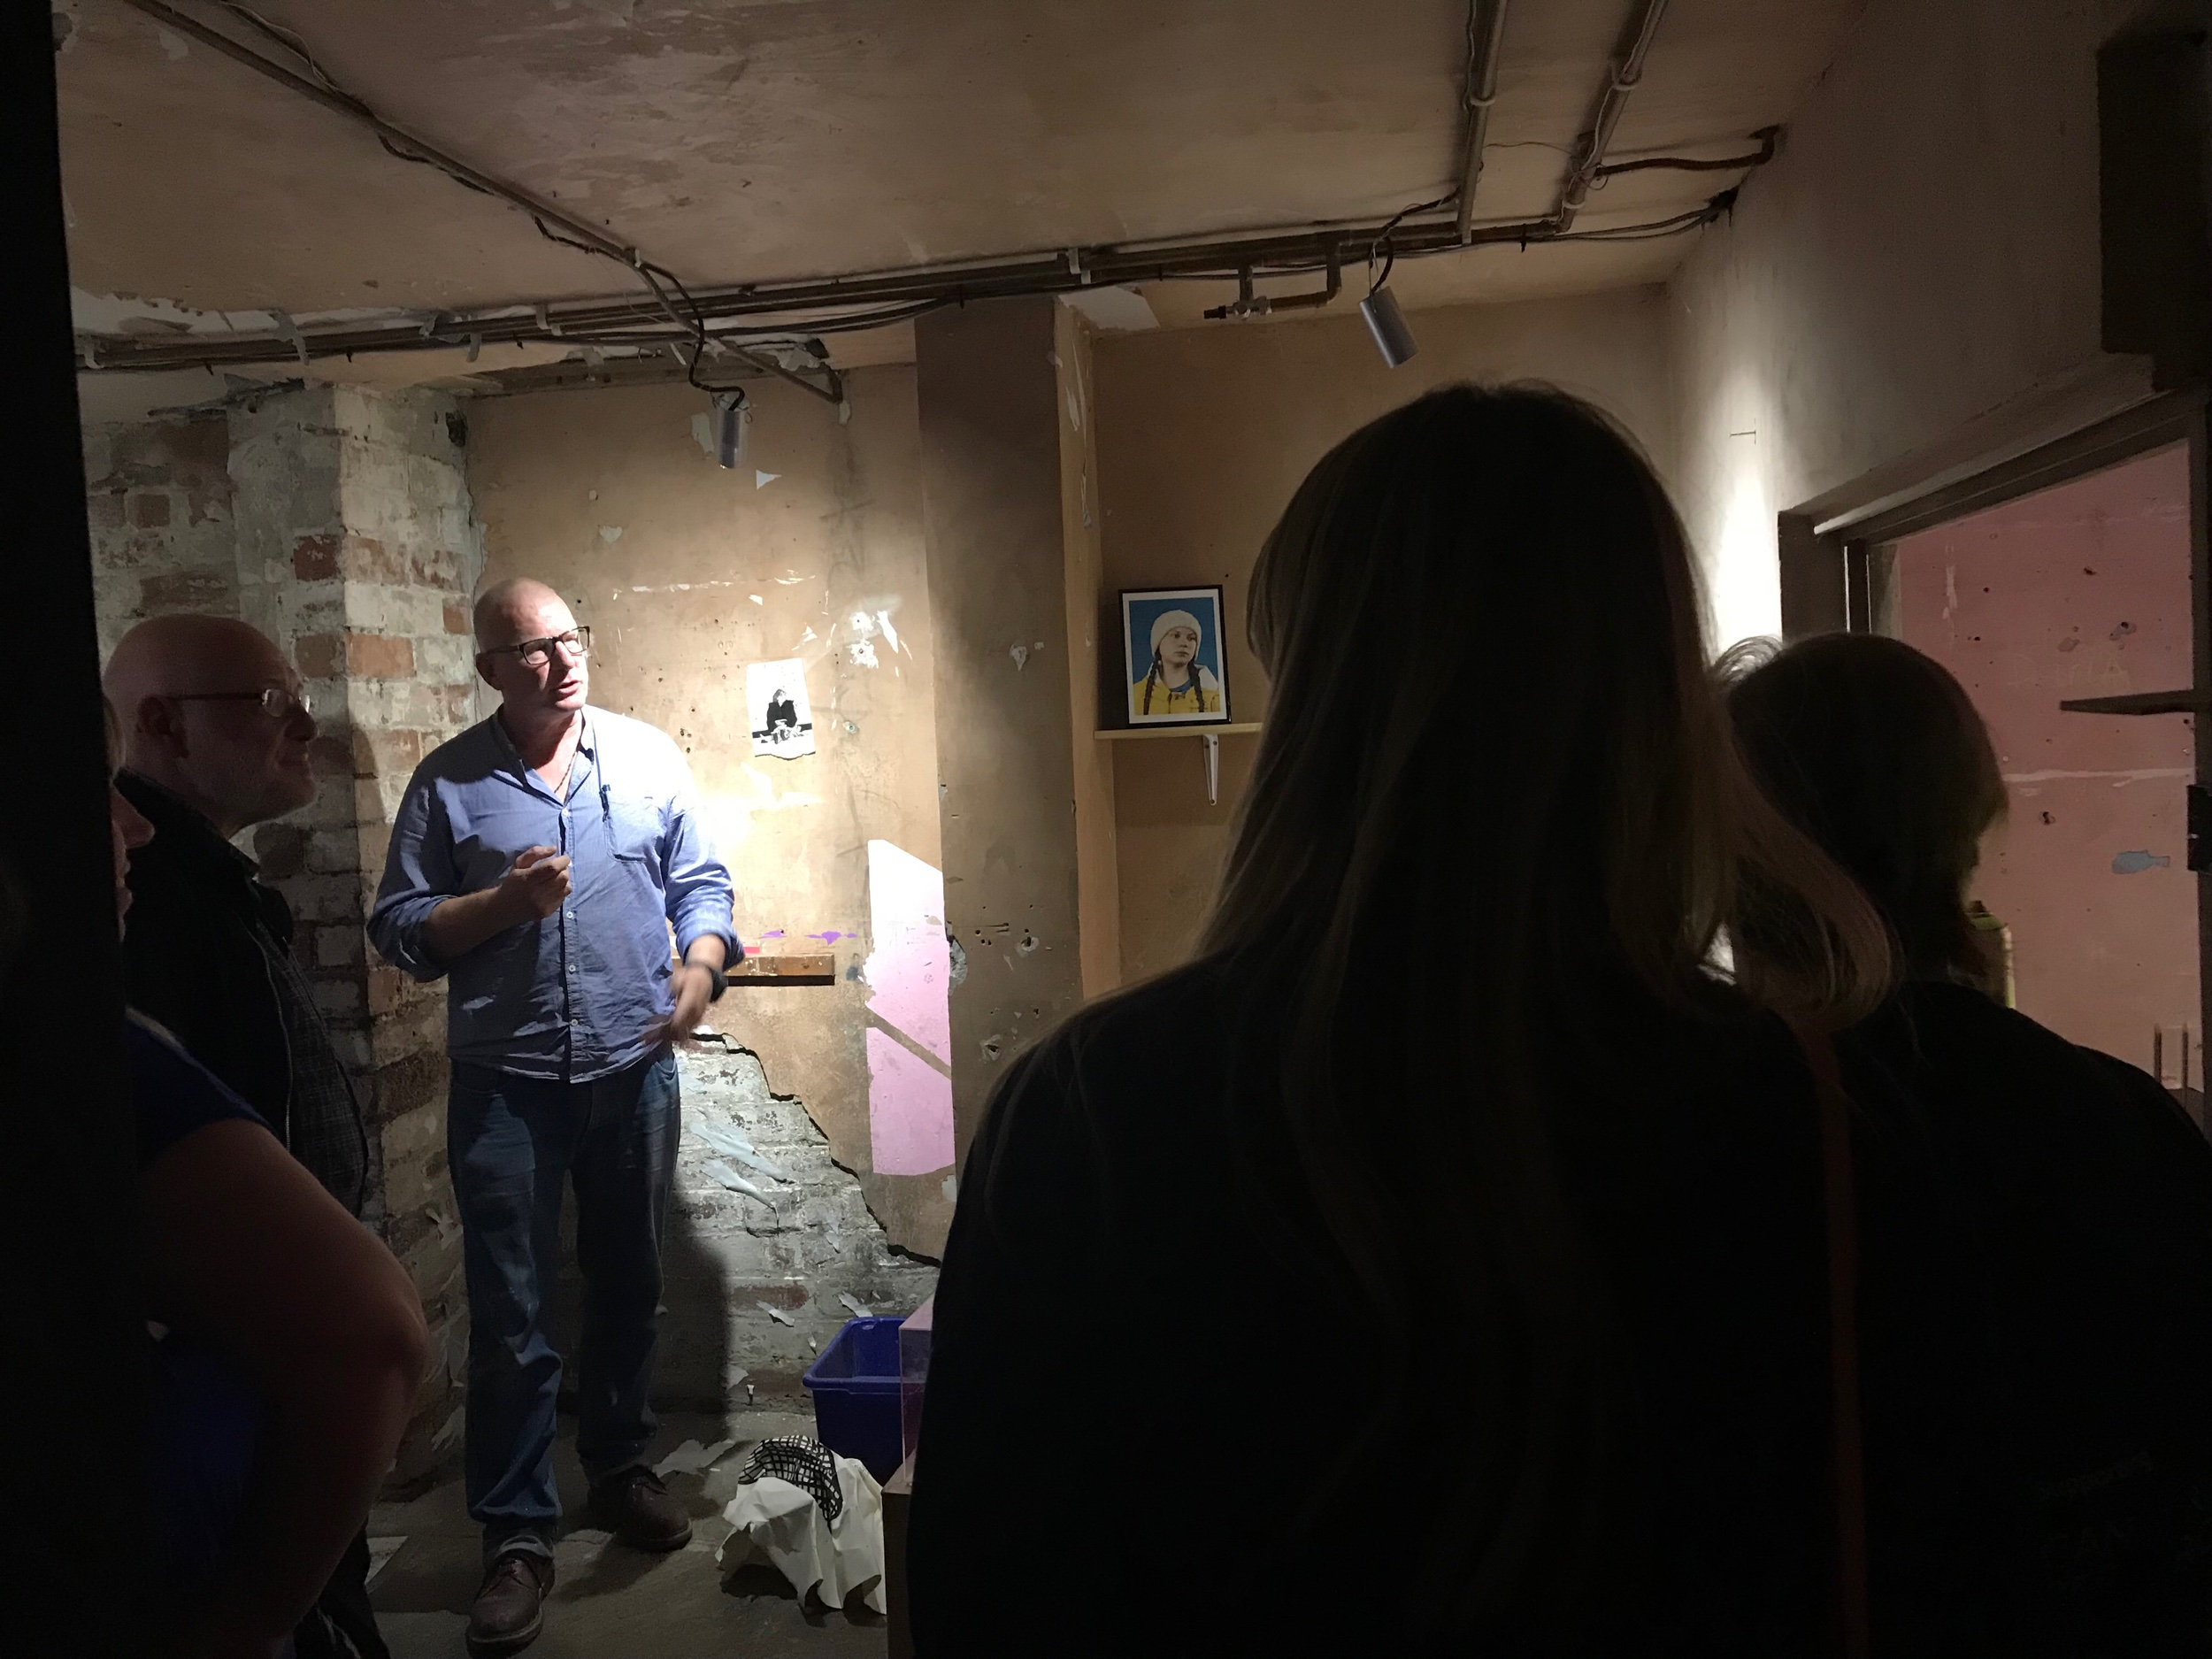 On site at BasementArtsProject: Phill Hopkins talks about his almost complete exhibition 'A House Within A Home' which opens Saturday 10th August | 12-5pm